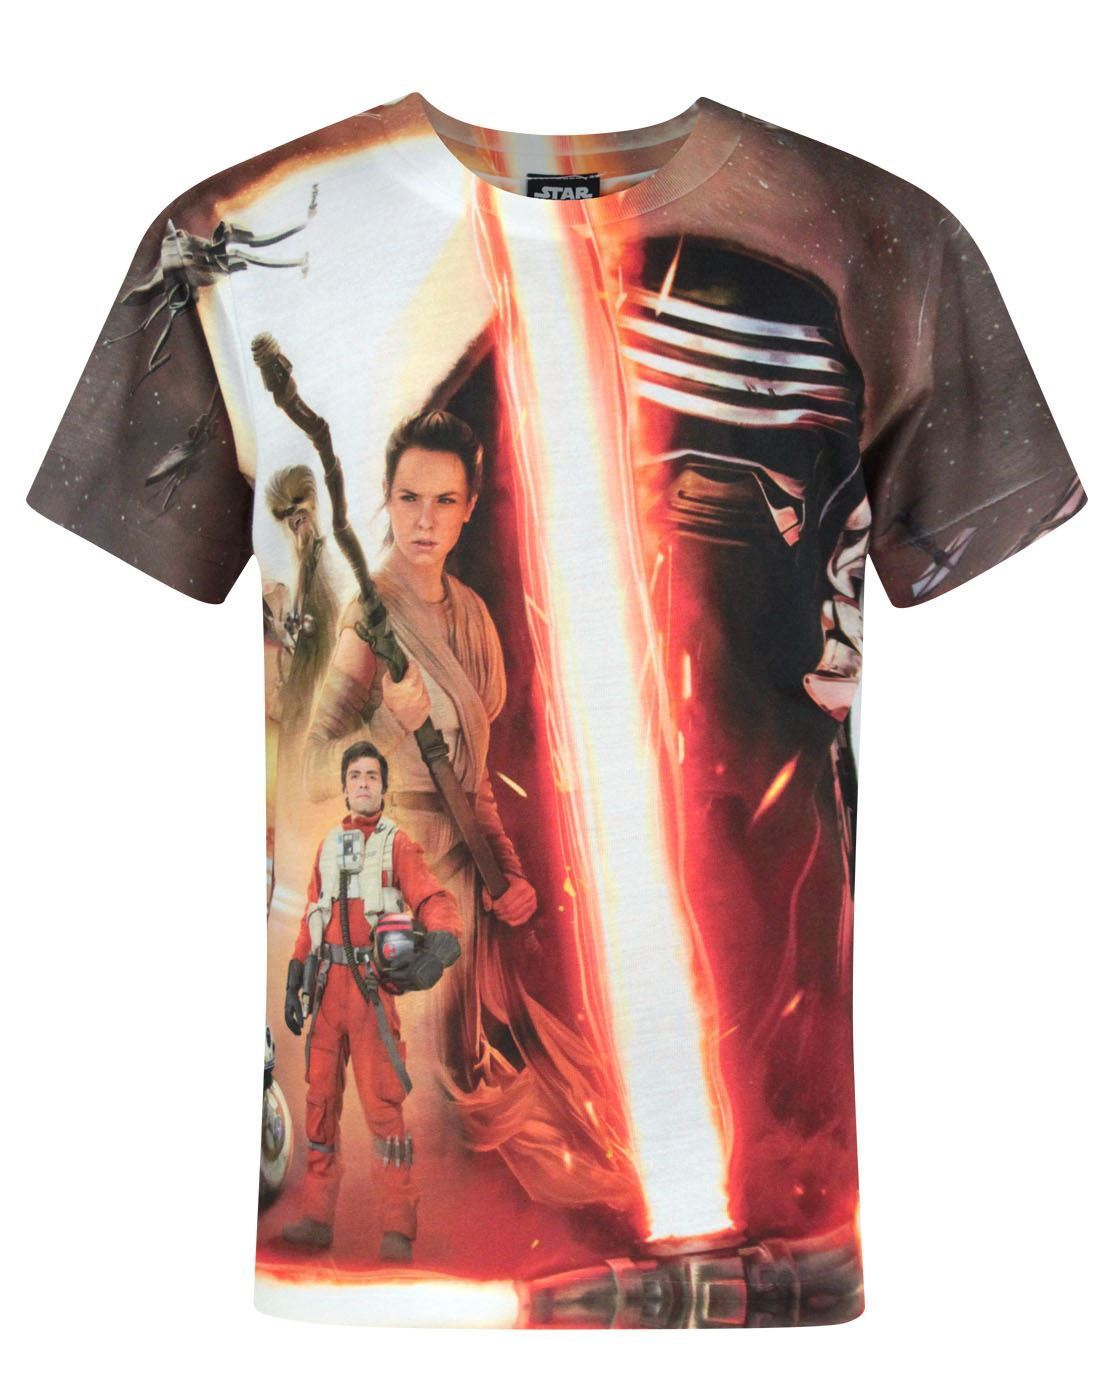 Star Wars Force Awakens Heroes & Villains Sublimation Boy's T-Shirt